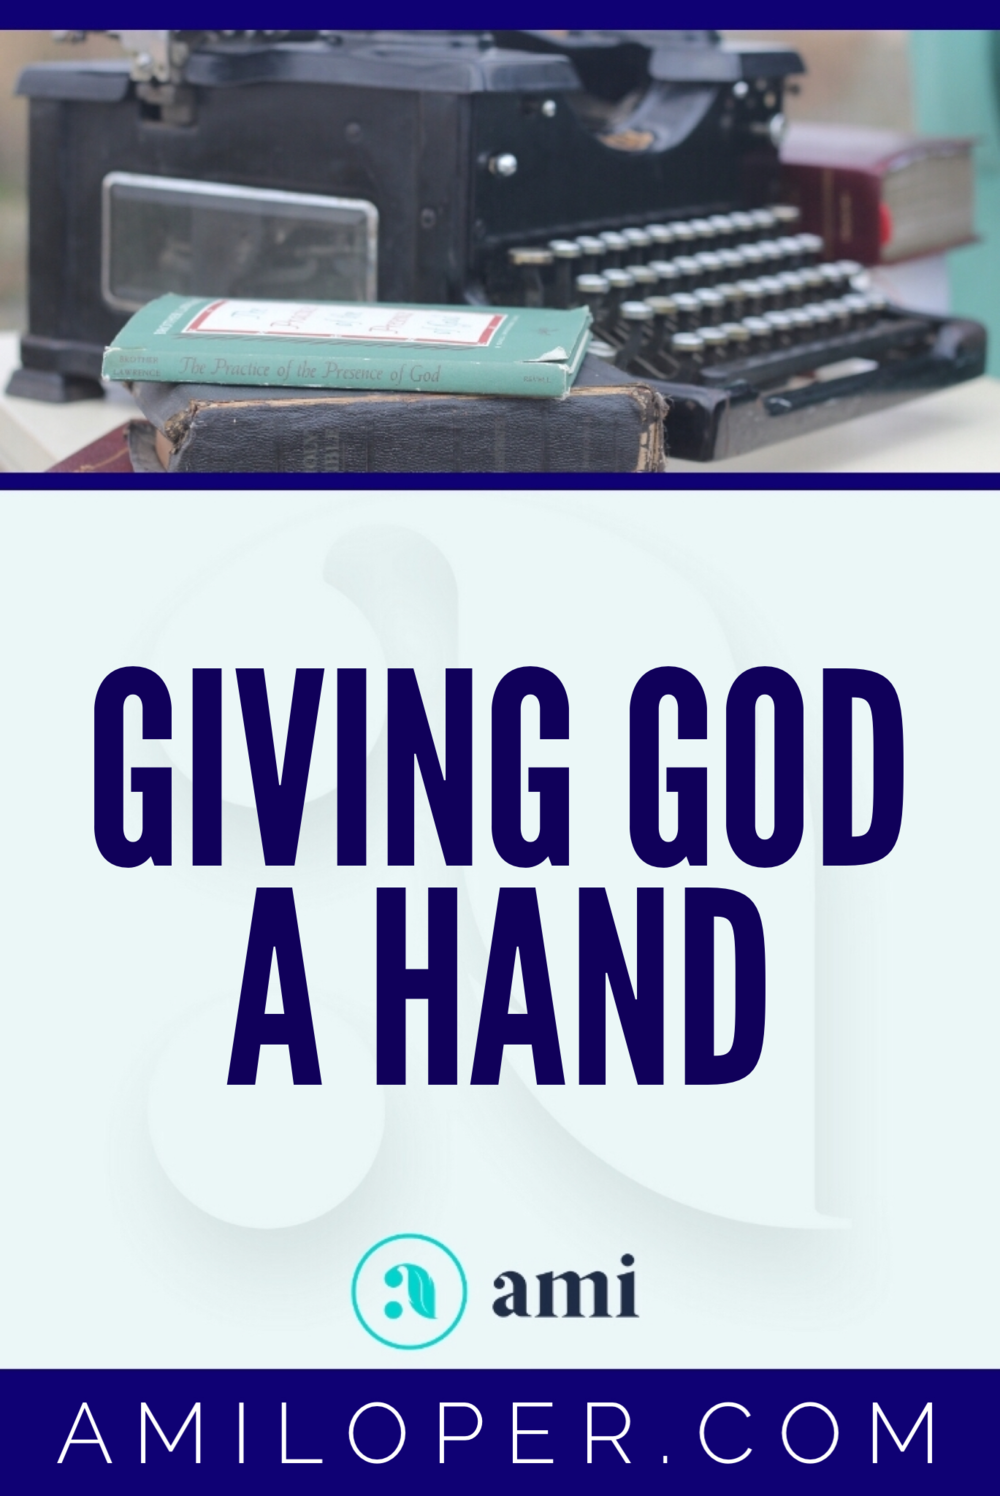 I know we're supposed to cooperate with God, work alongside Him, following His lead. But sometimes I'm tempted to take the reins and control things. When fear takes over, trust evaporates. #control #ChristianBlog